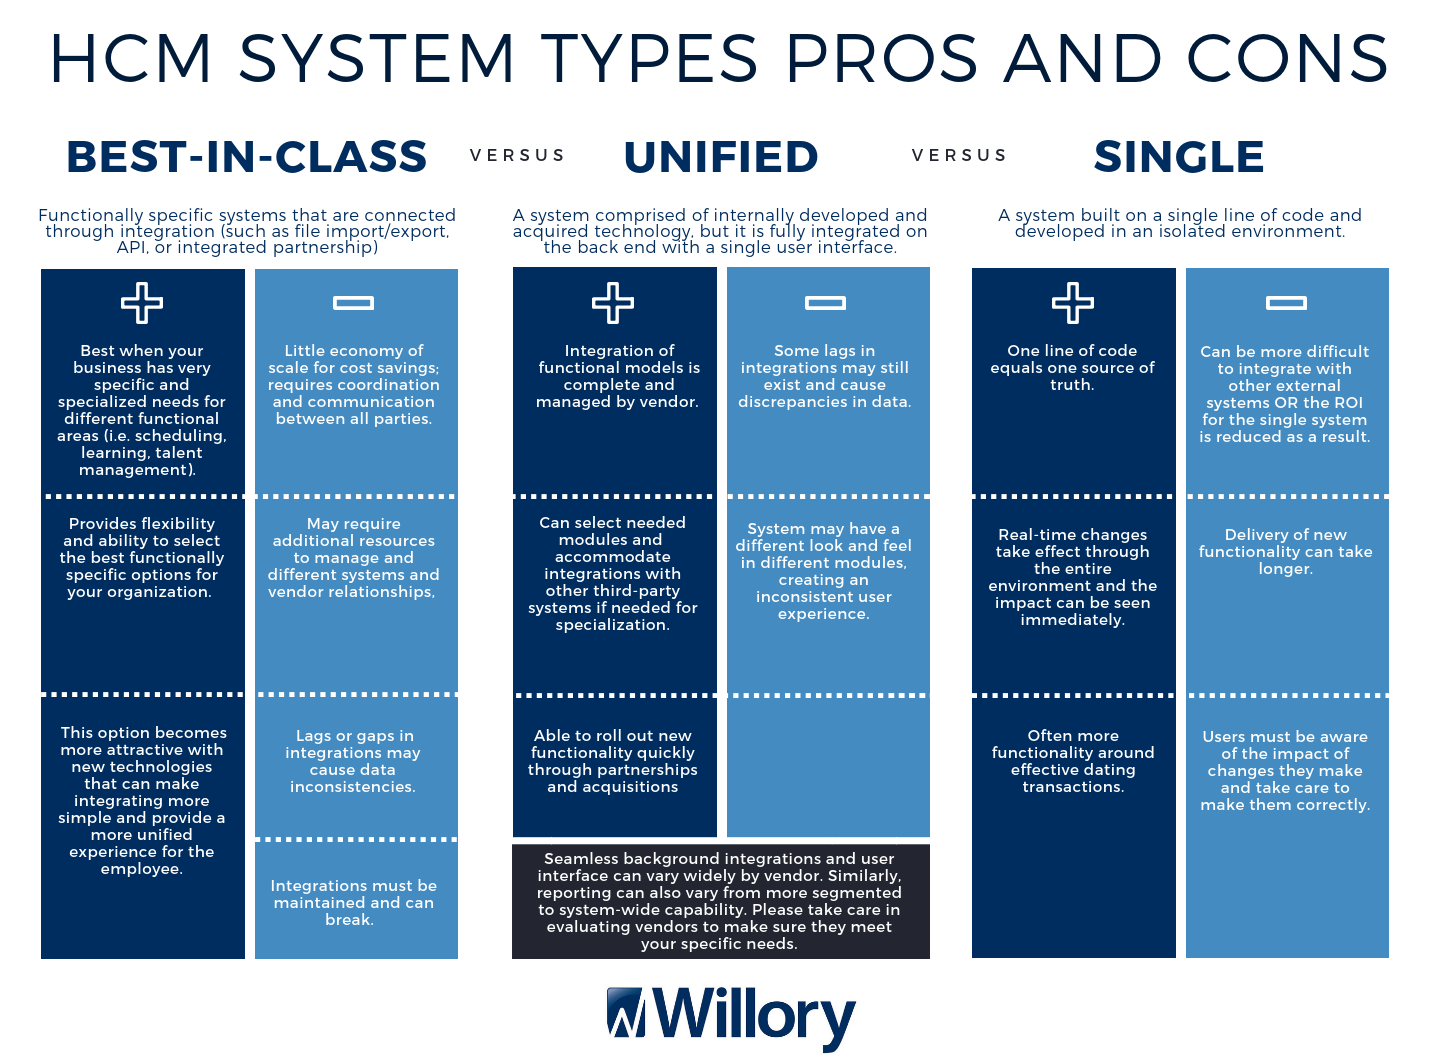 hcm system types pros and cons